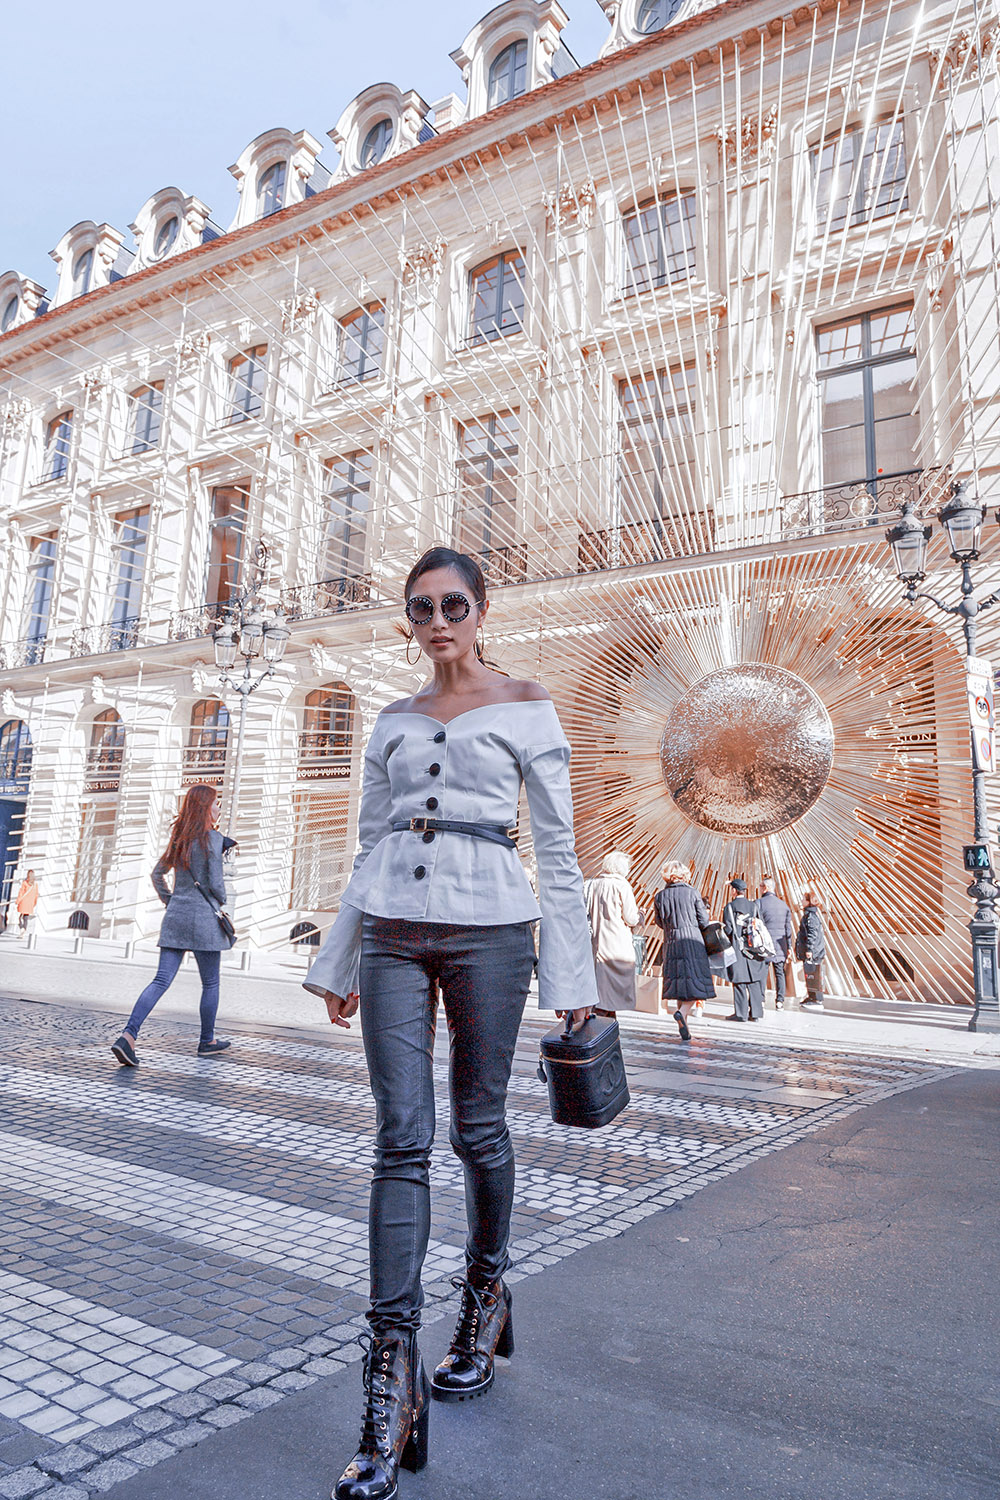 A View of the New Louis Vuitton Place Vendome Store | Of Leather and Lace - Fashion and Travel Blog by Tina Lee